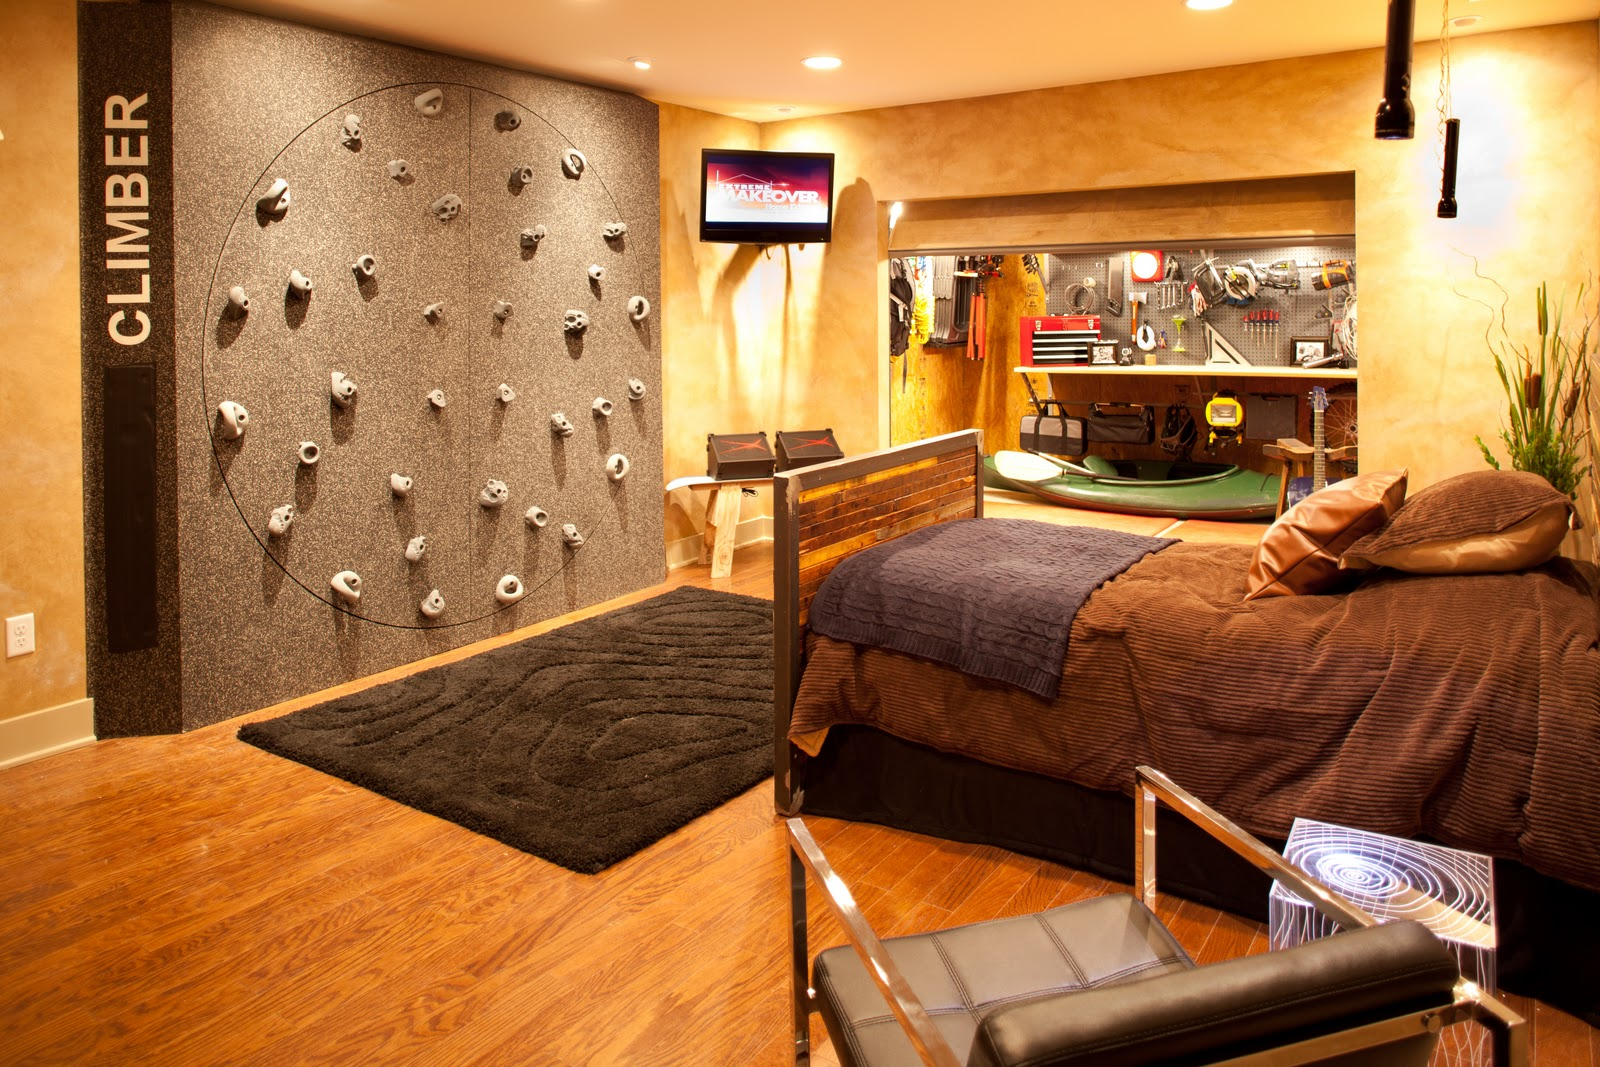 randy collier photography extreme makeover home edition. Black Bedroom Furniture Sets. Home Design Ideas